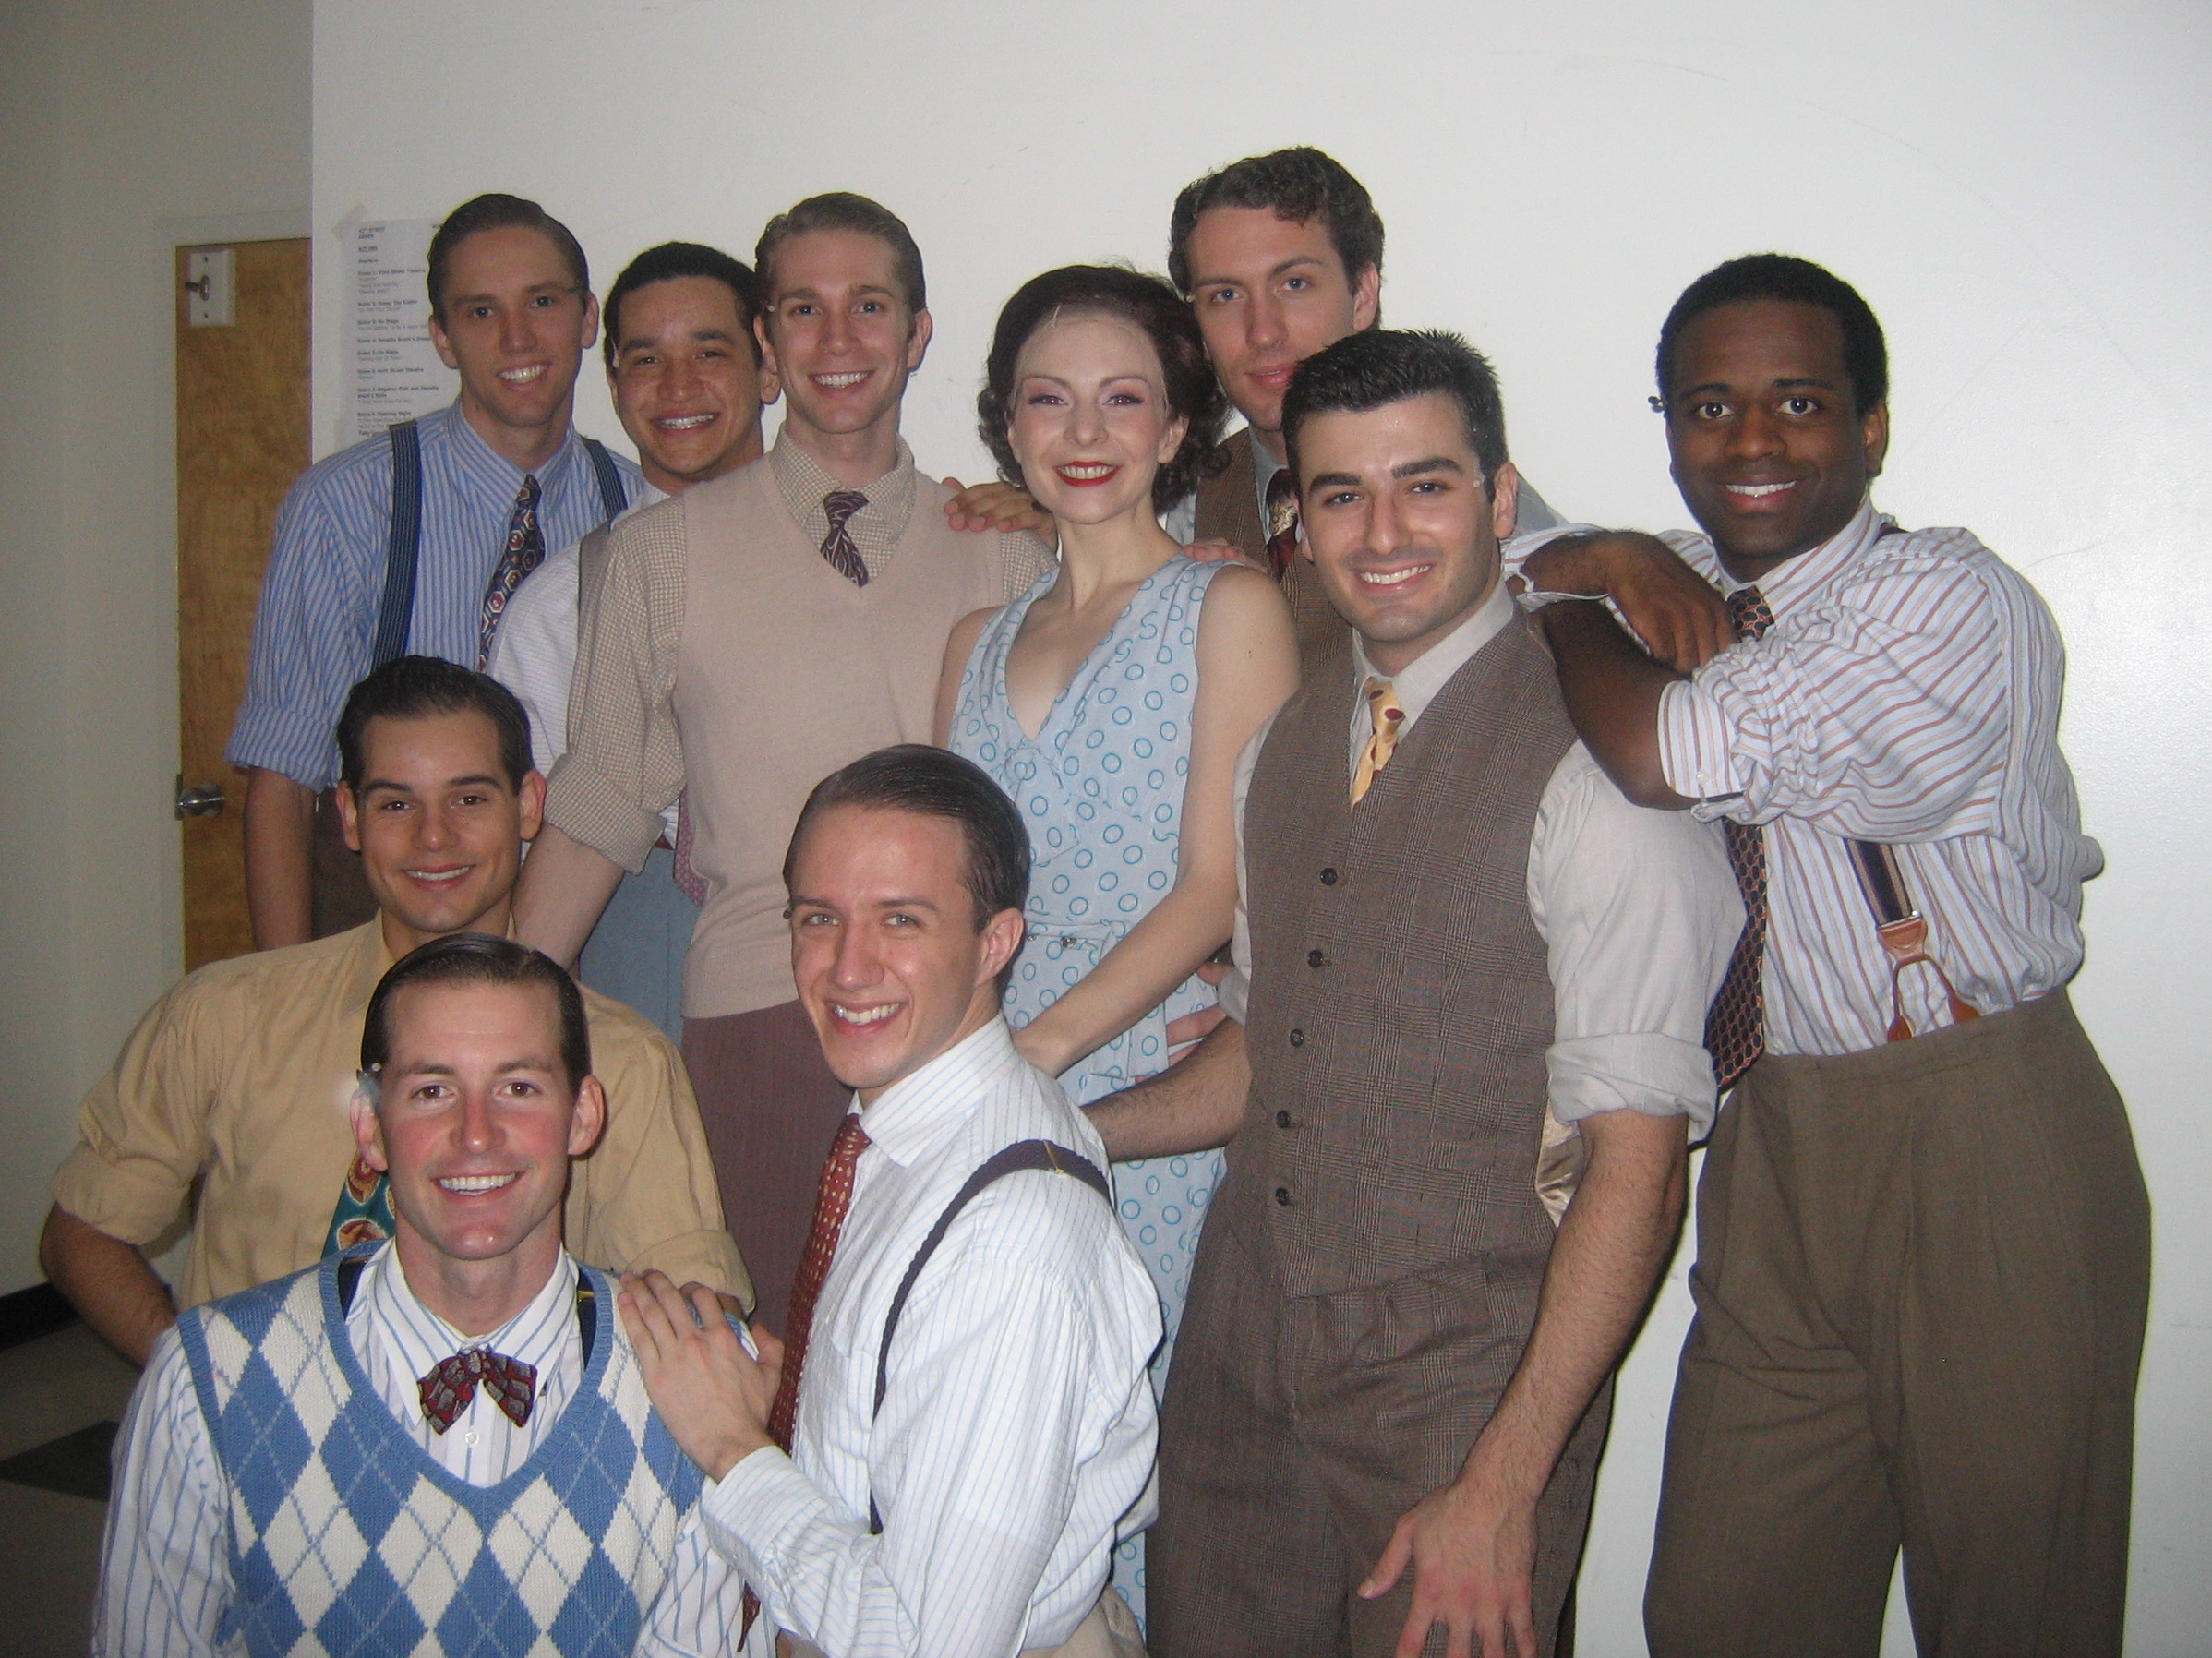 The most phenomenal tap dancers you could imagine working with.